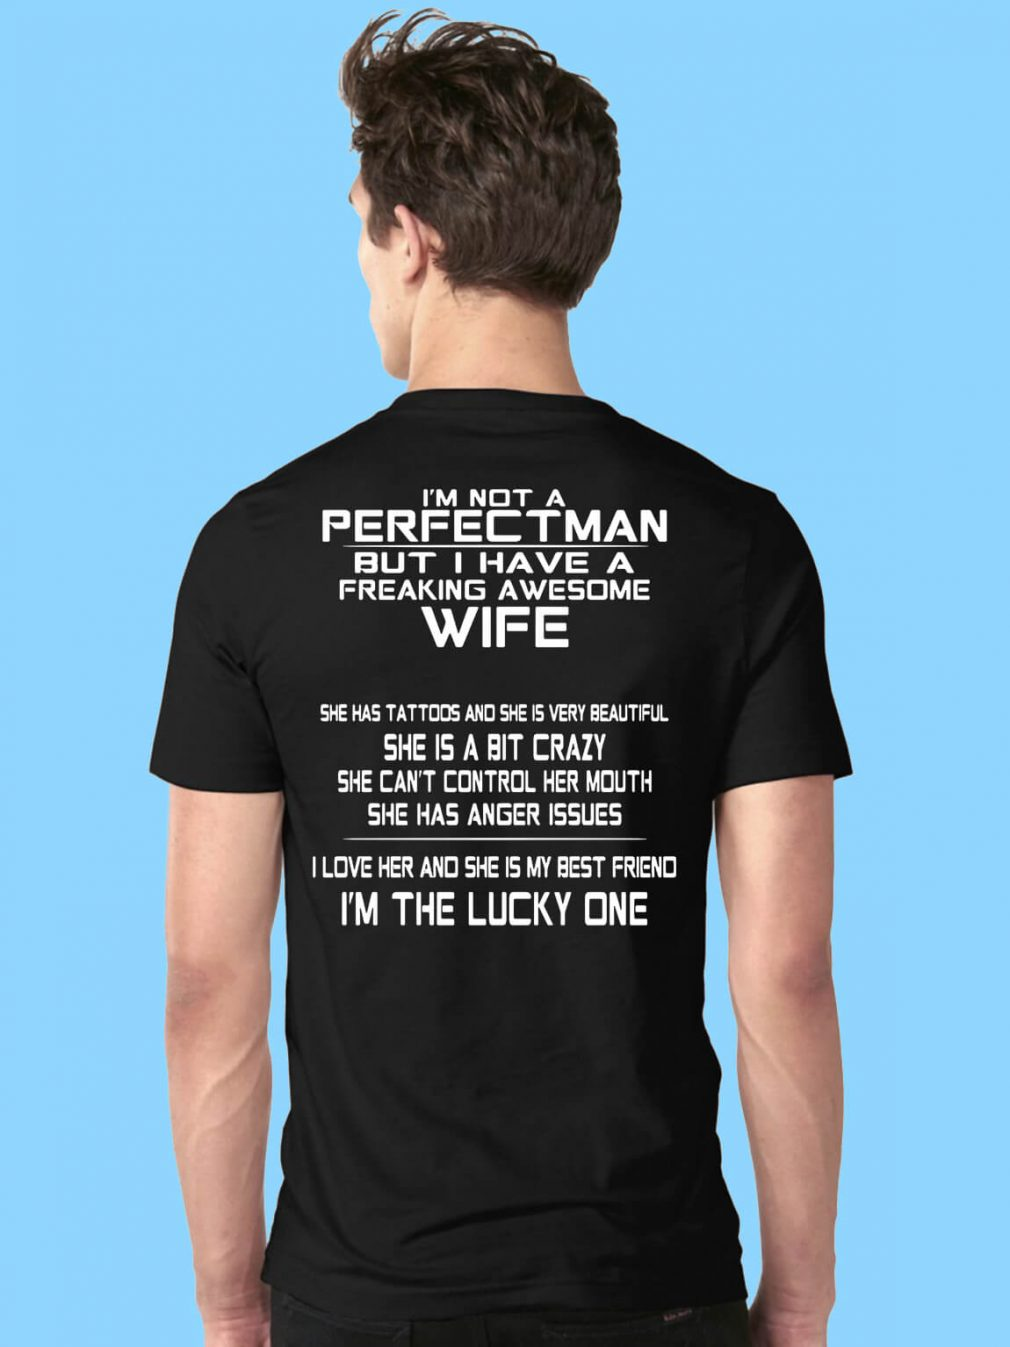 I'm not a perfect man but I have a freaking awesome wife shirt